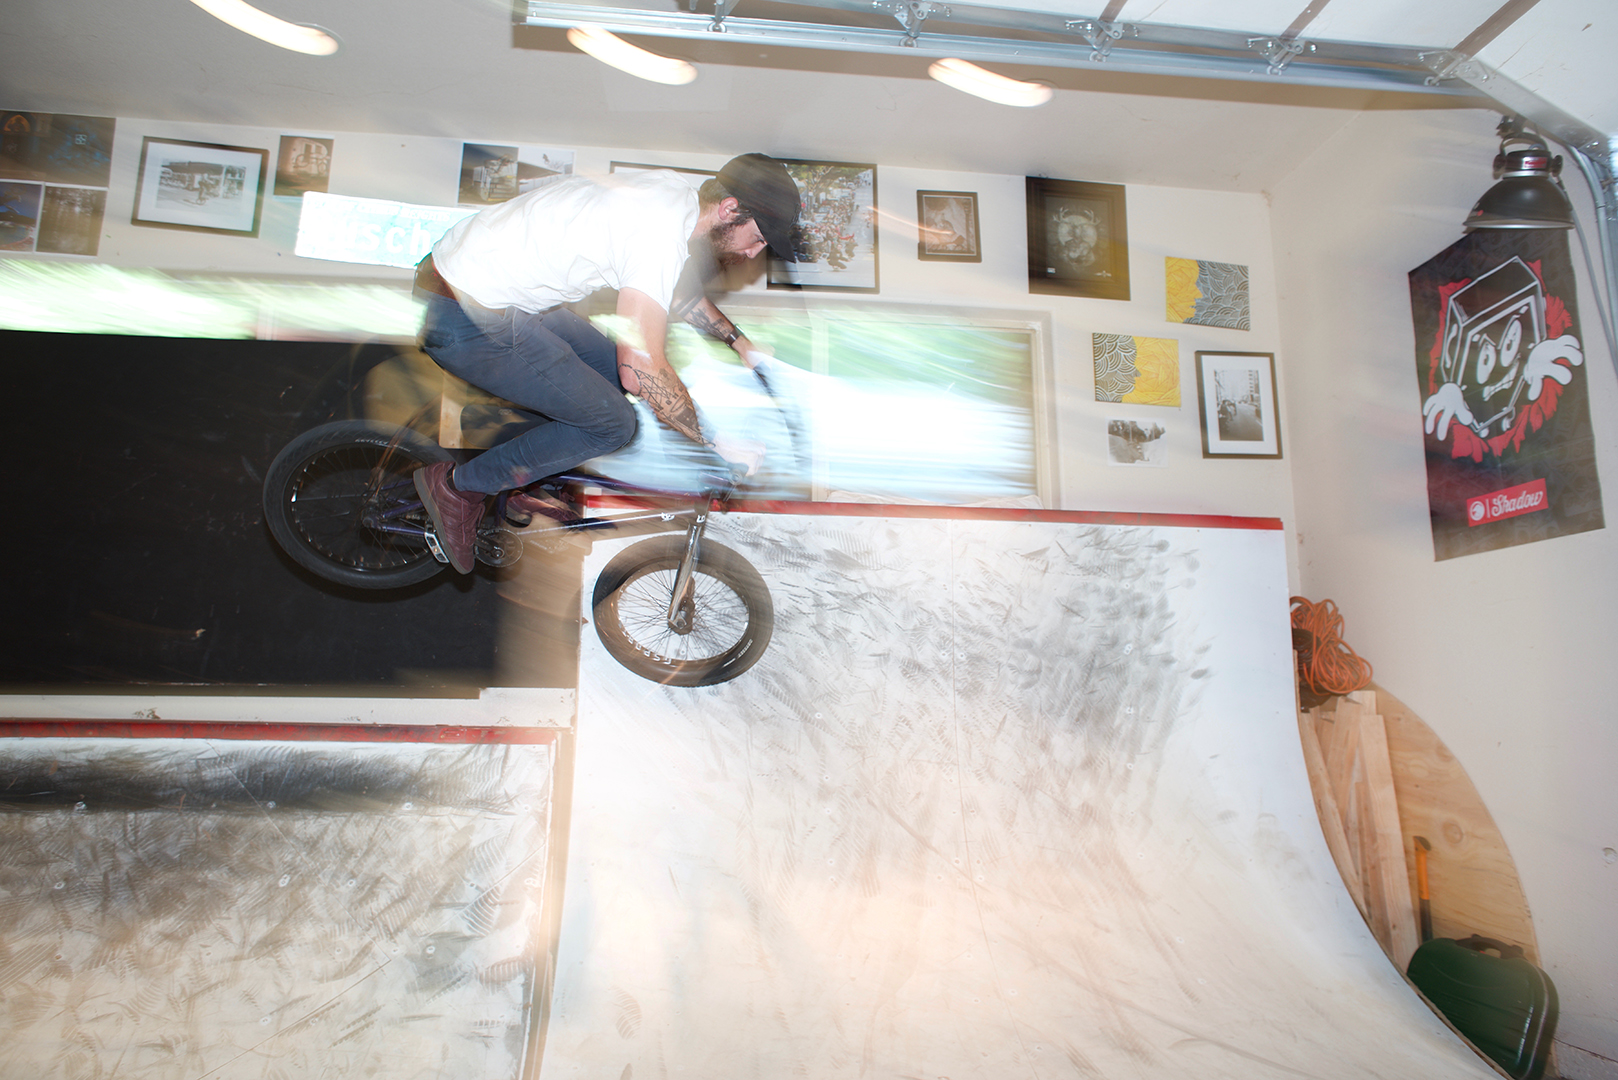 Travis getting some air in the improbably tight confines of his garage.